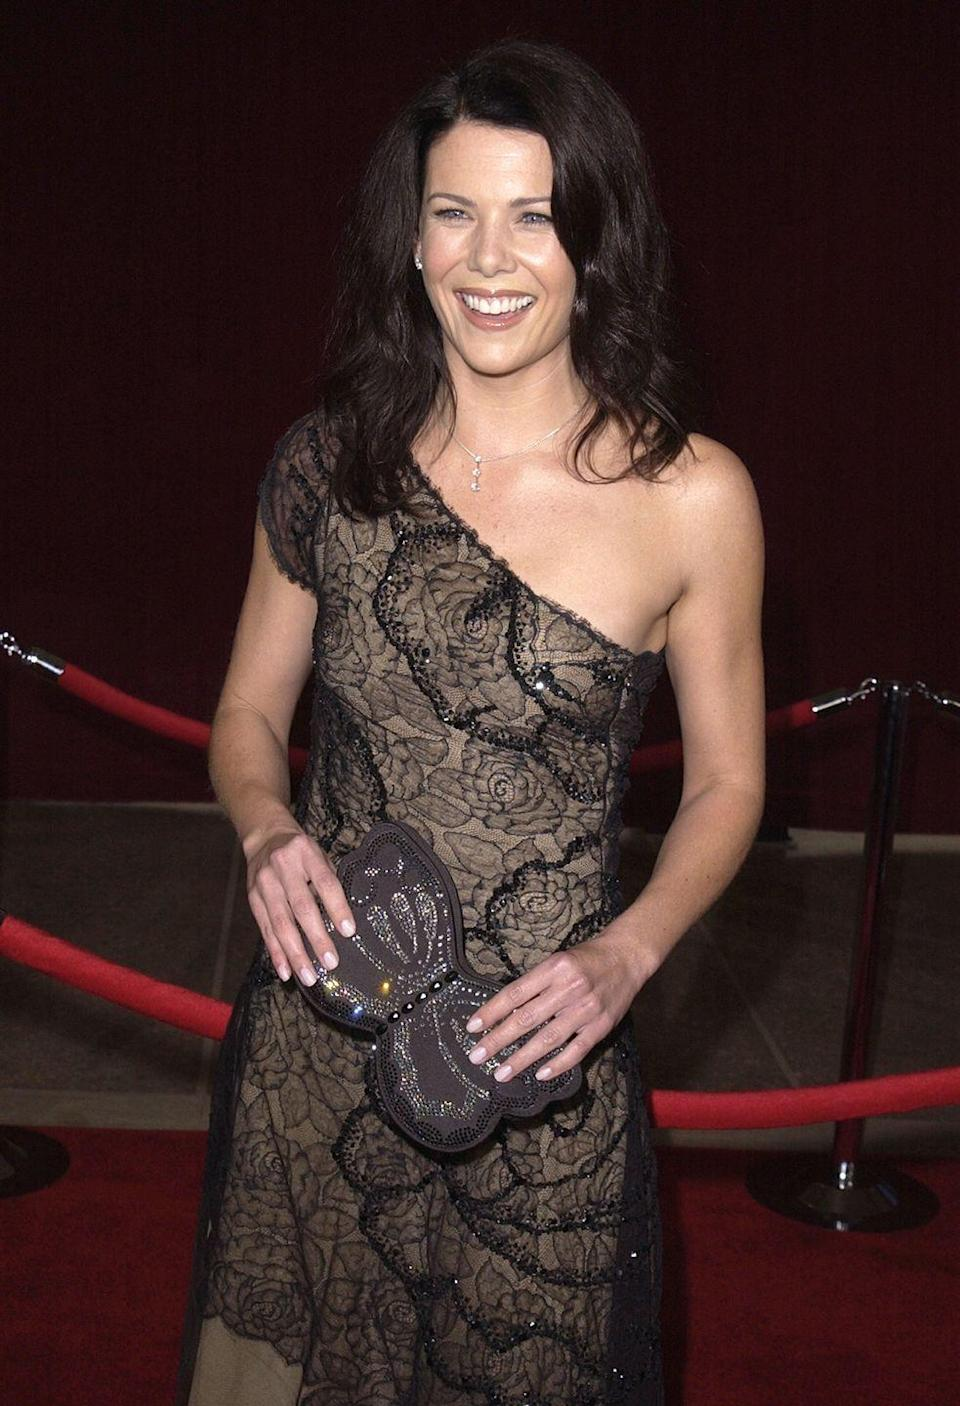 <p>In 1996, Lauren Graham snagged her first role in television in a guest spot on <em>3rd Rock from the Sun, </em>but she didn't hit her stride as an actress until she played the fast-talking, coffee-crazed single mother, Lorelai Gilmore. </p>